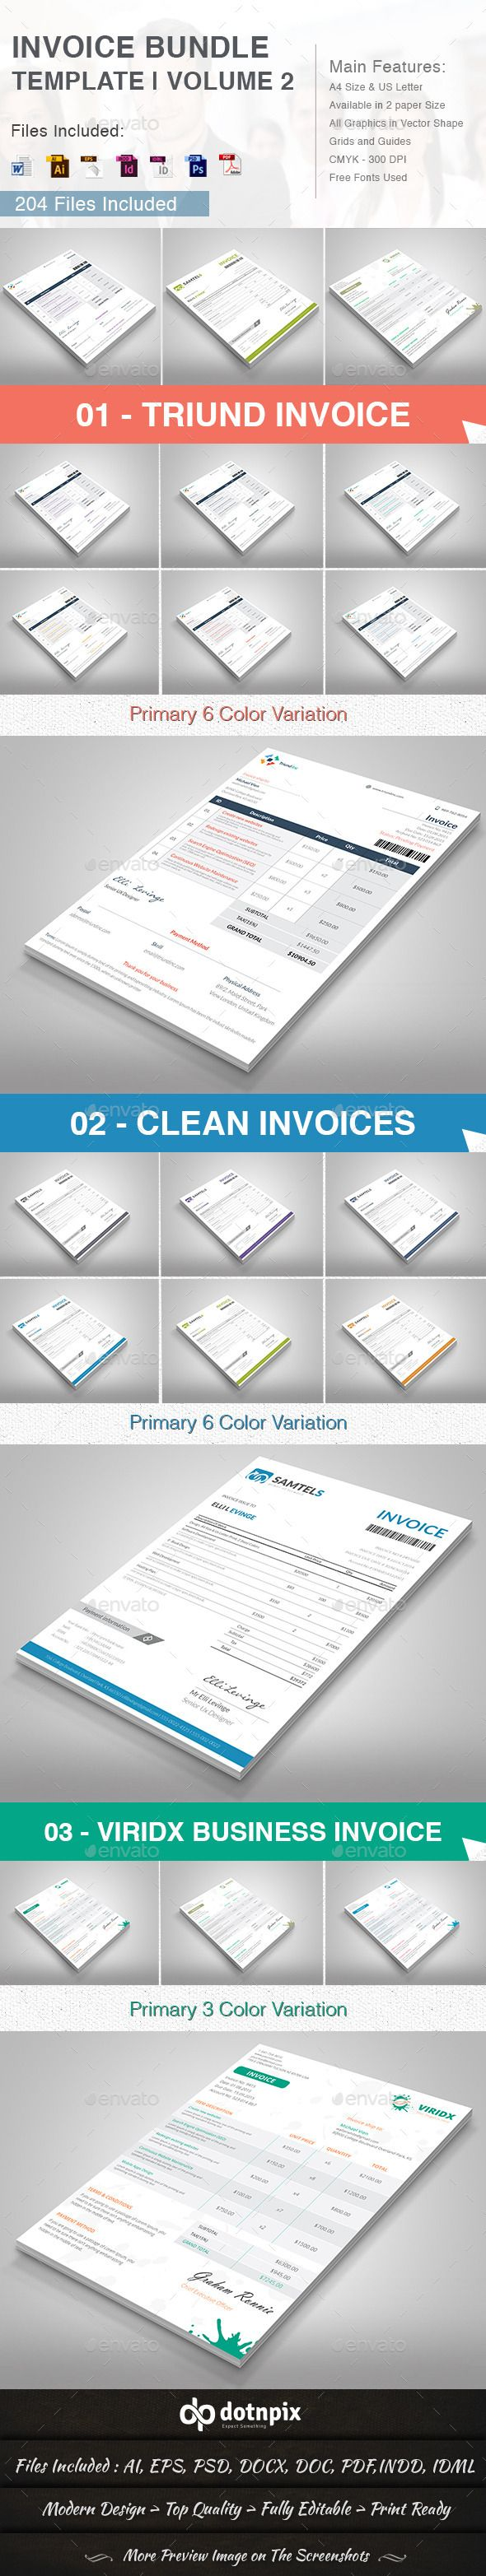 Invoice Bundle Template Volume 2